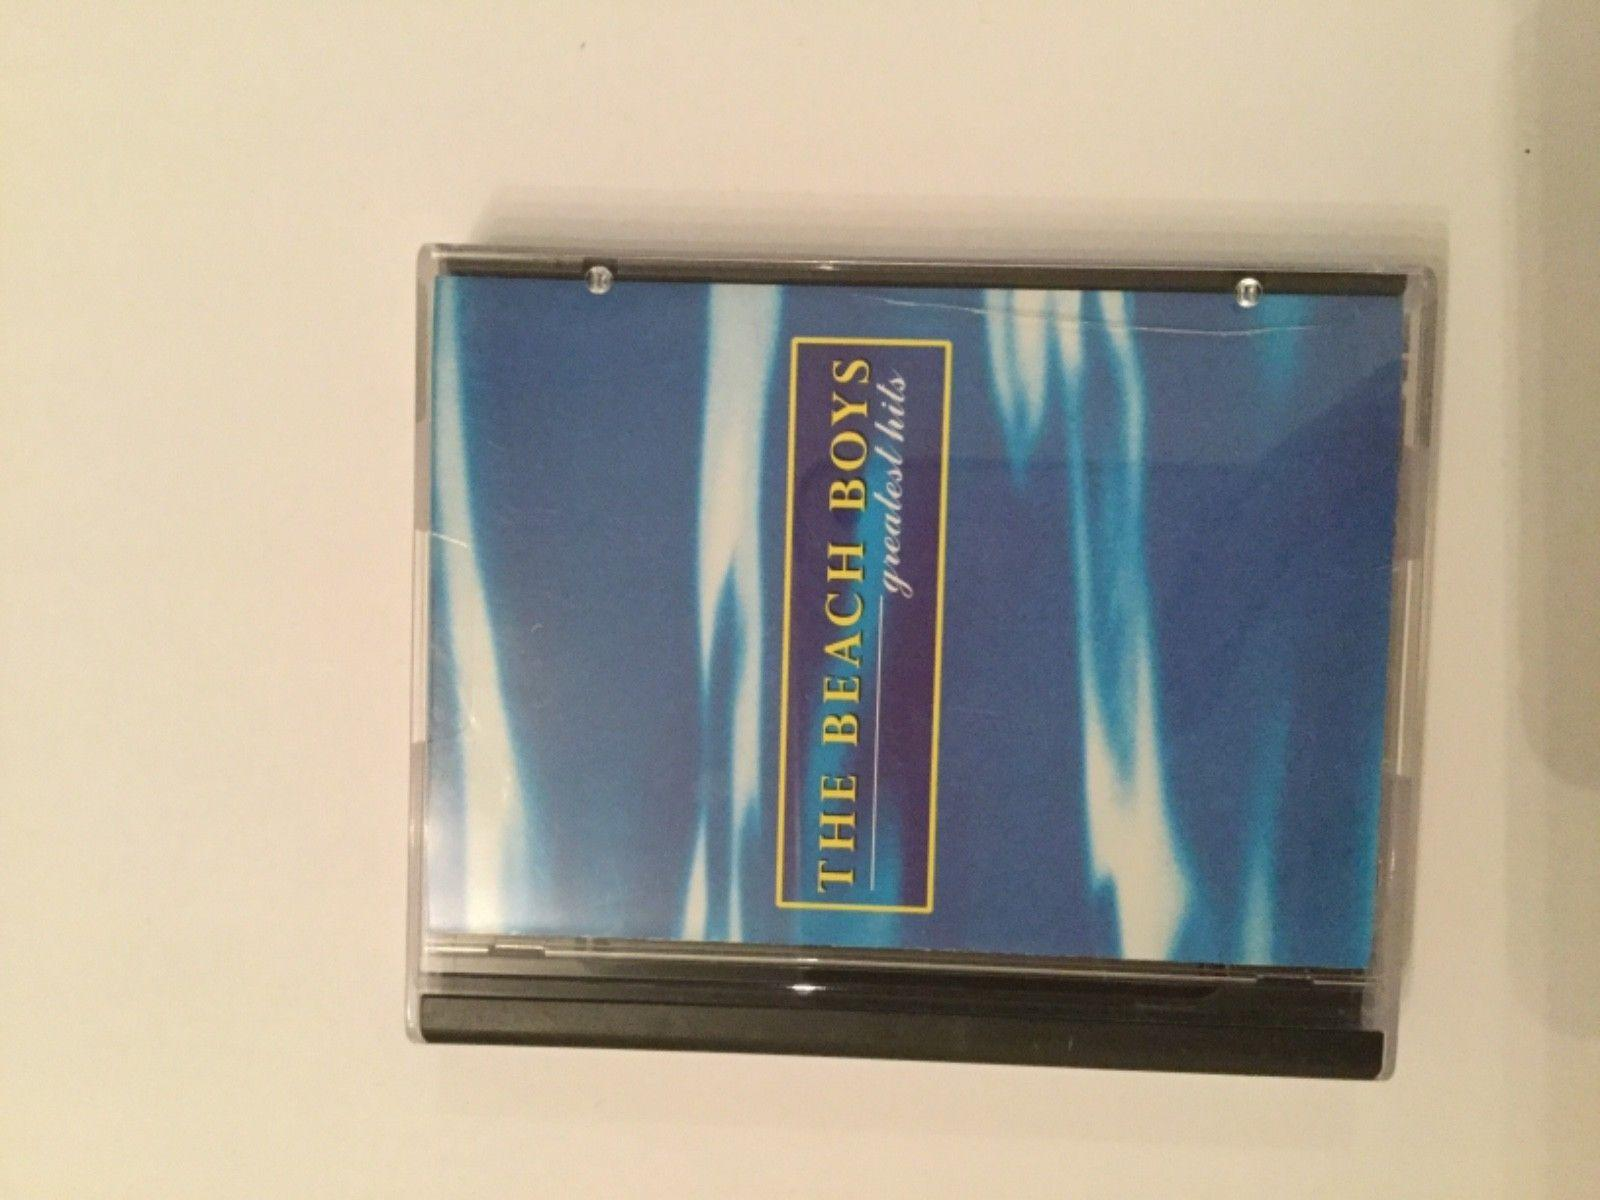 The Beach Boys Greatest Hits mini disc